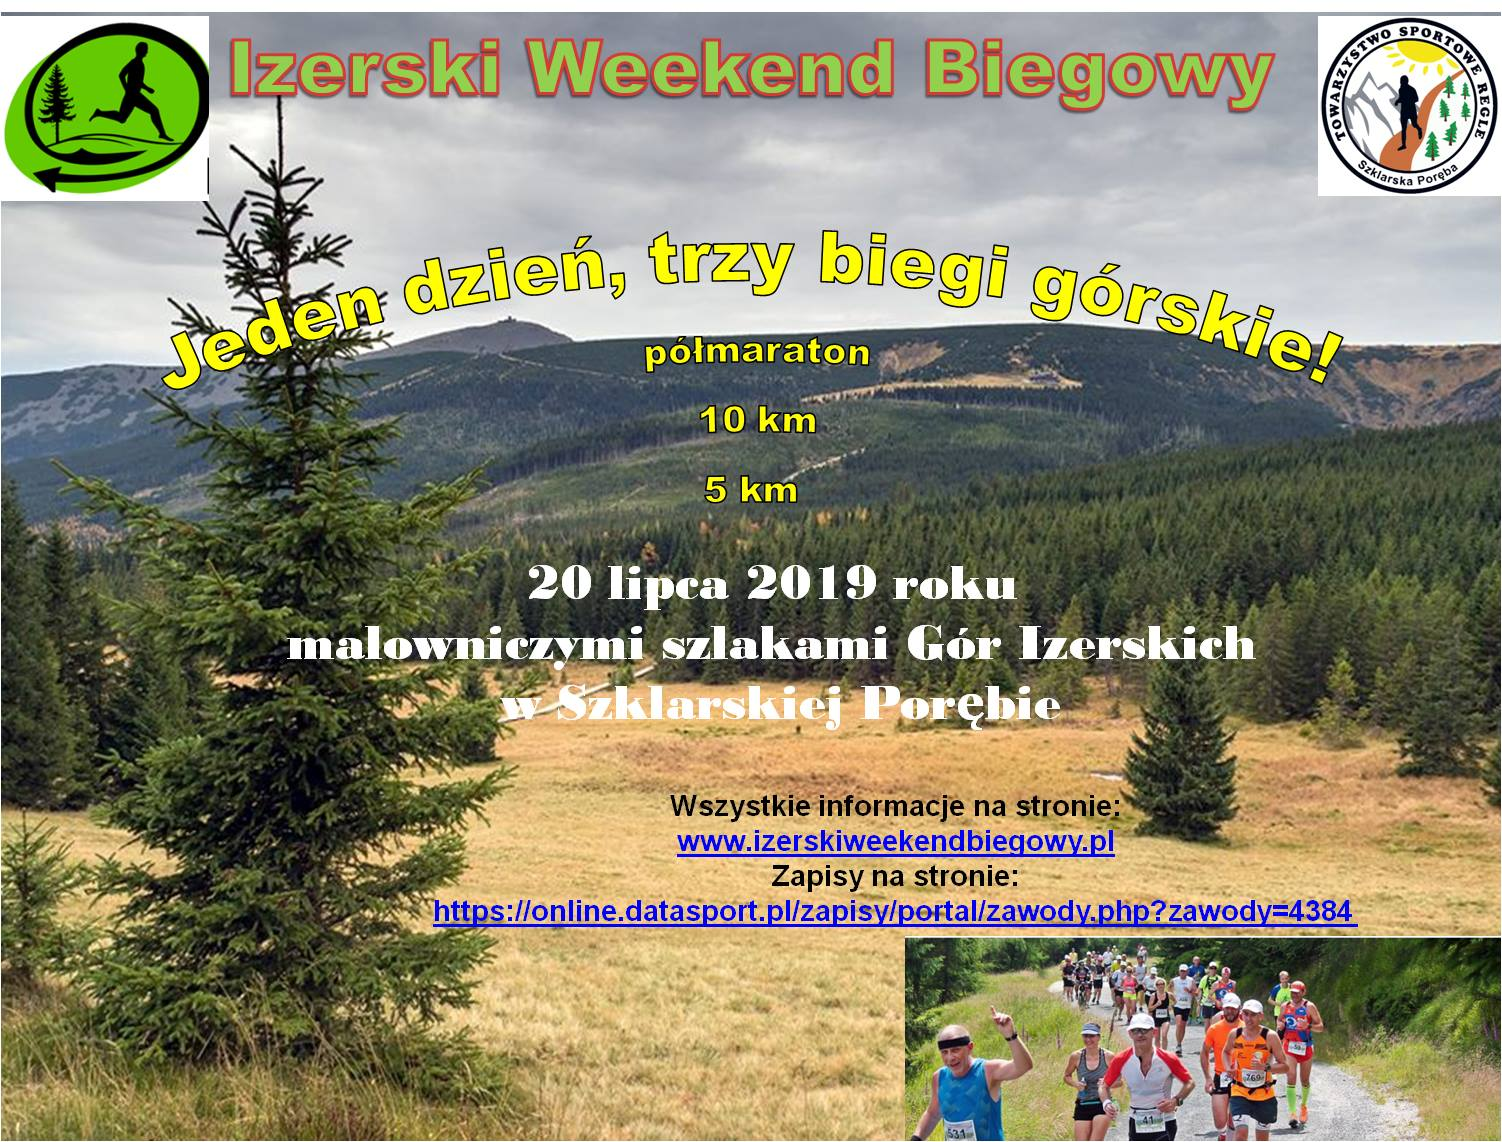 Izerski Weekend Biegowy 2019